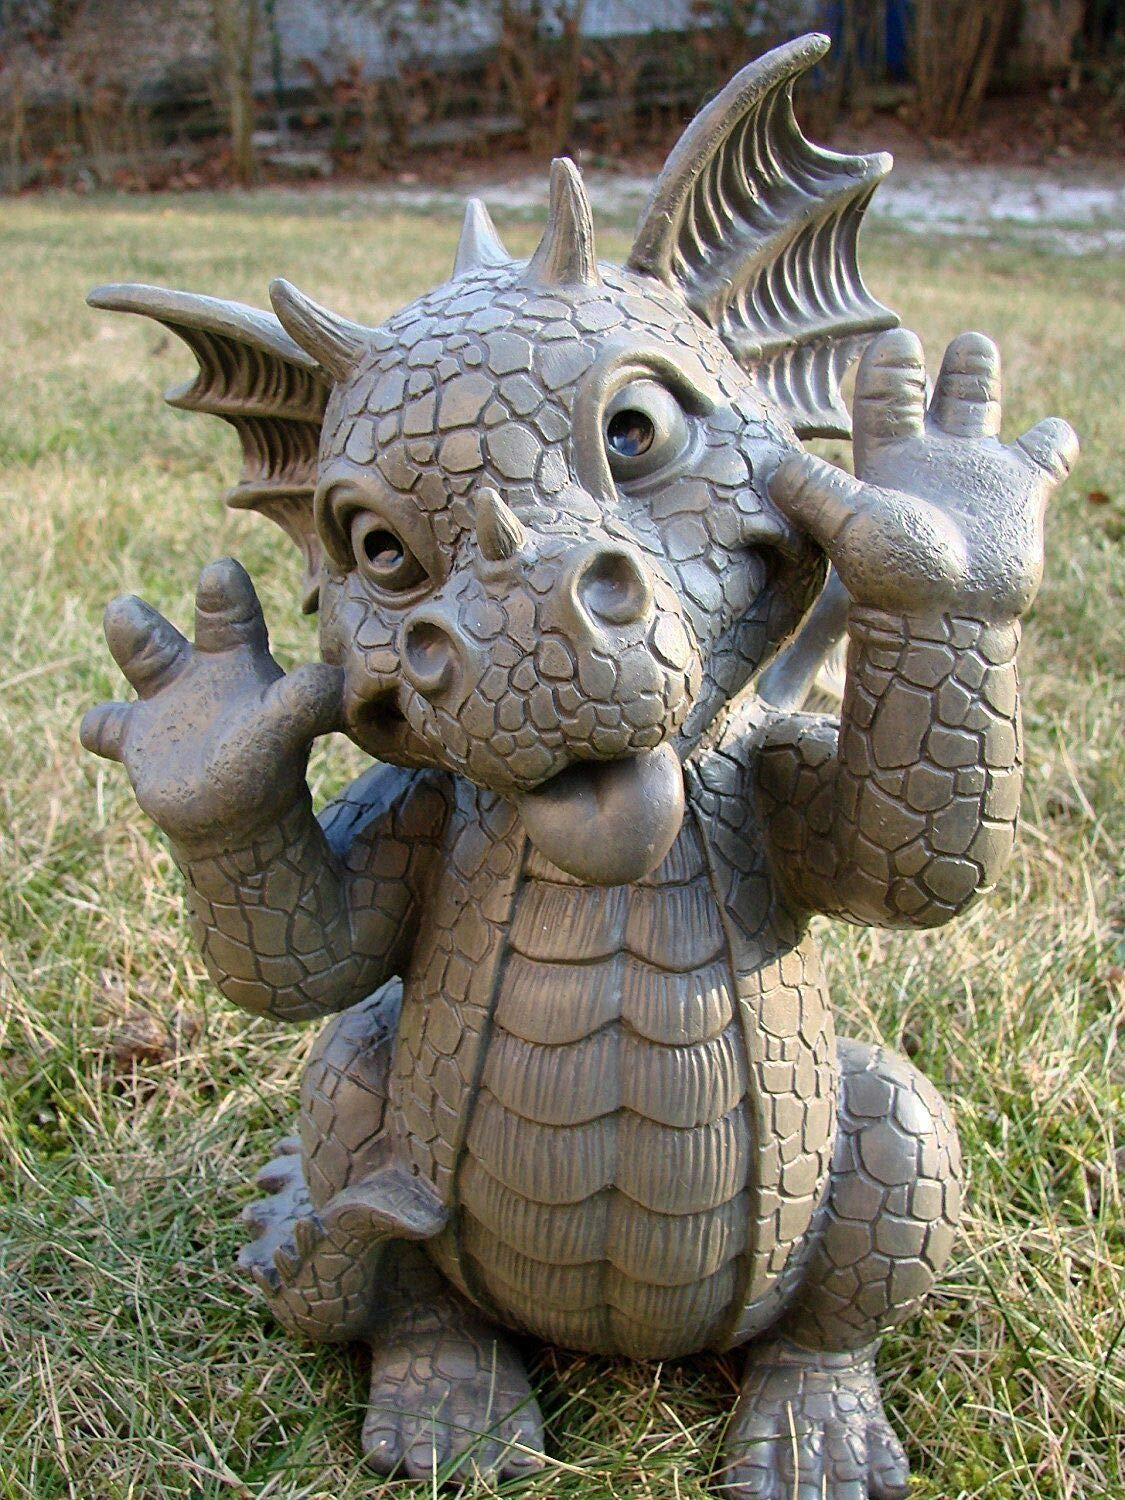 Pacific Giftware Garden Dragon Taunting Dragon Garden Display Decorative Accent Sculpture Stone Finish 10 Inch Tall